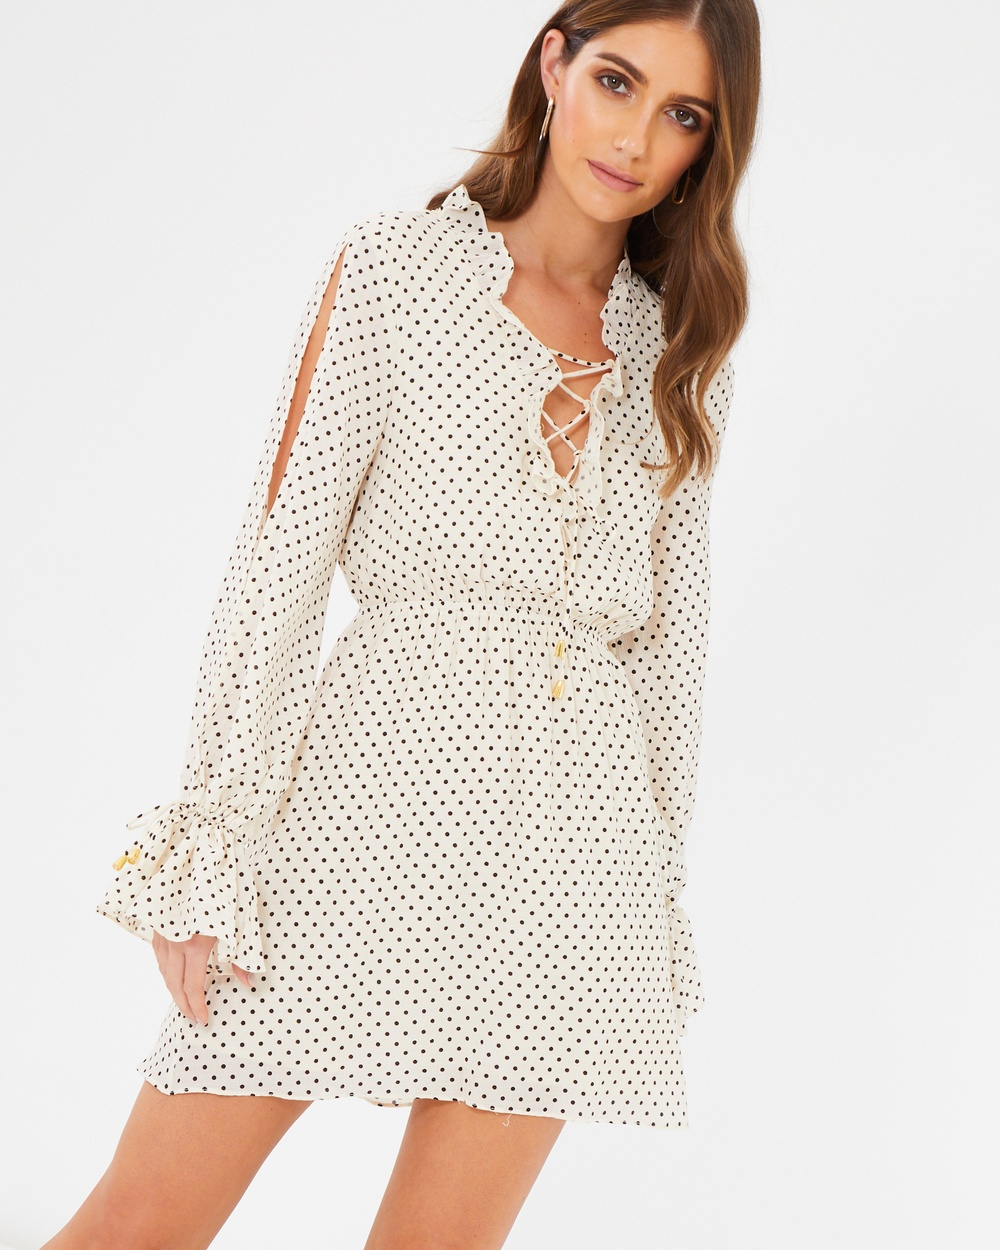 CHANCERY Stella Frill Dress Printed Dresses Ivory Based Polka Dot Stella Frill Dress